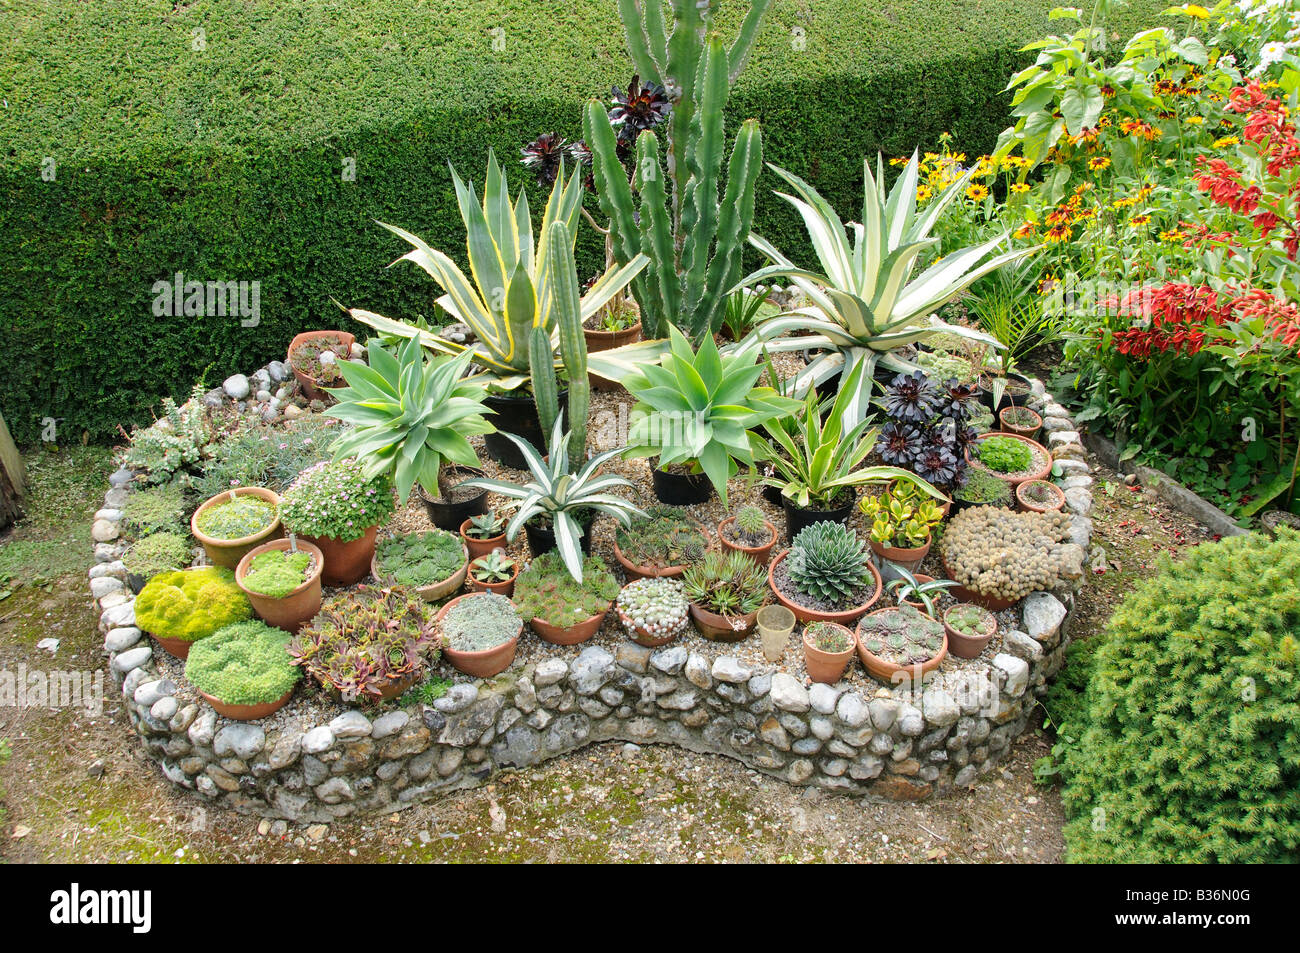 Outdoor Display Of Potted Sempervivums And Succulents On A Raised Bed Stock Photo Alamy